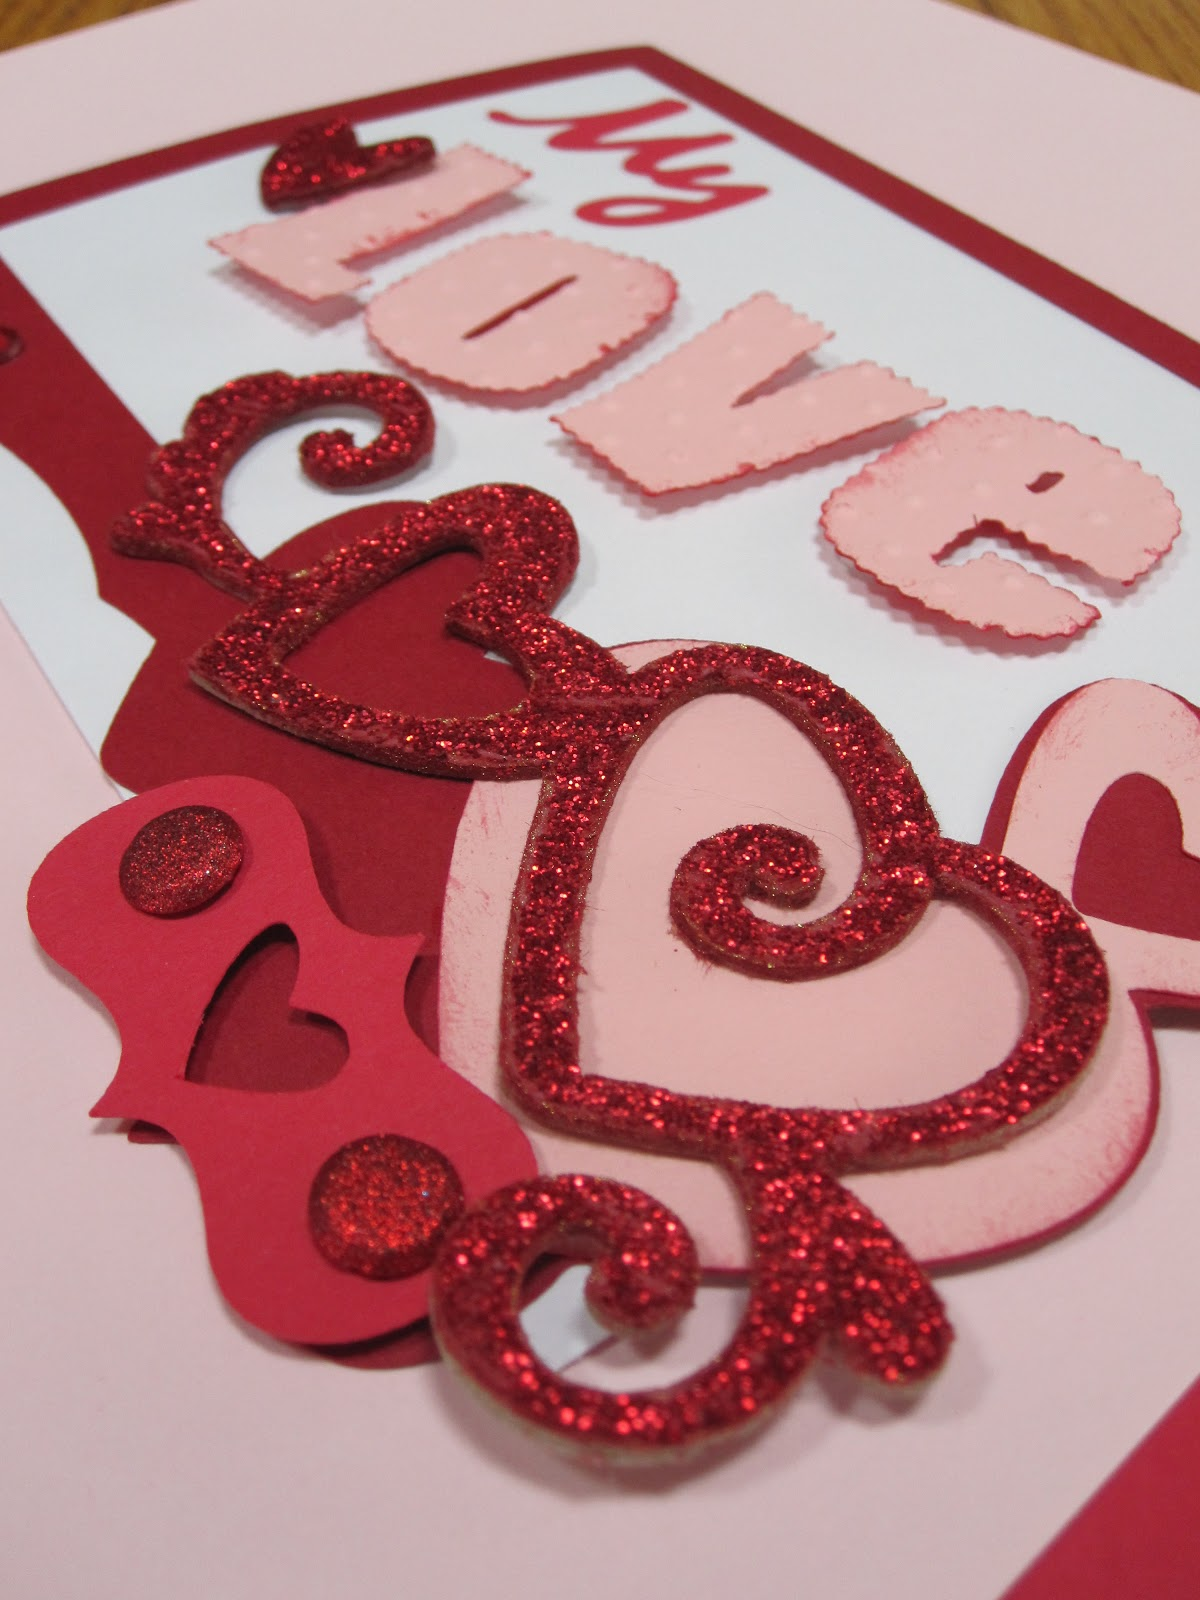 The paper retreat for my valentine for Designs for valentine cards